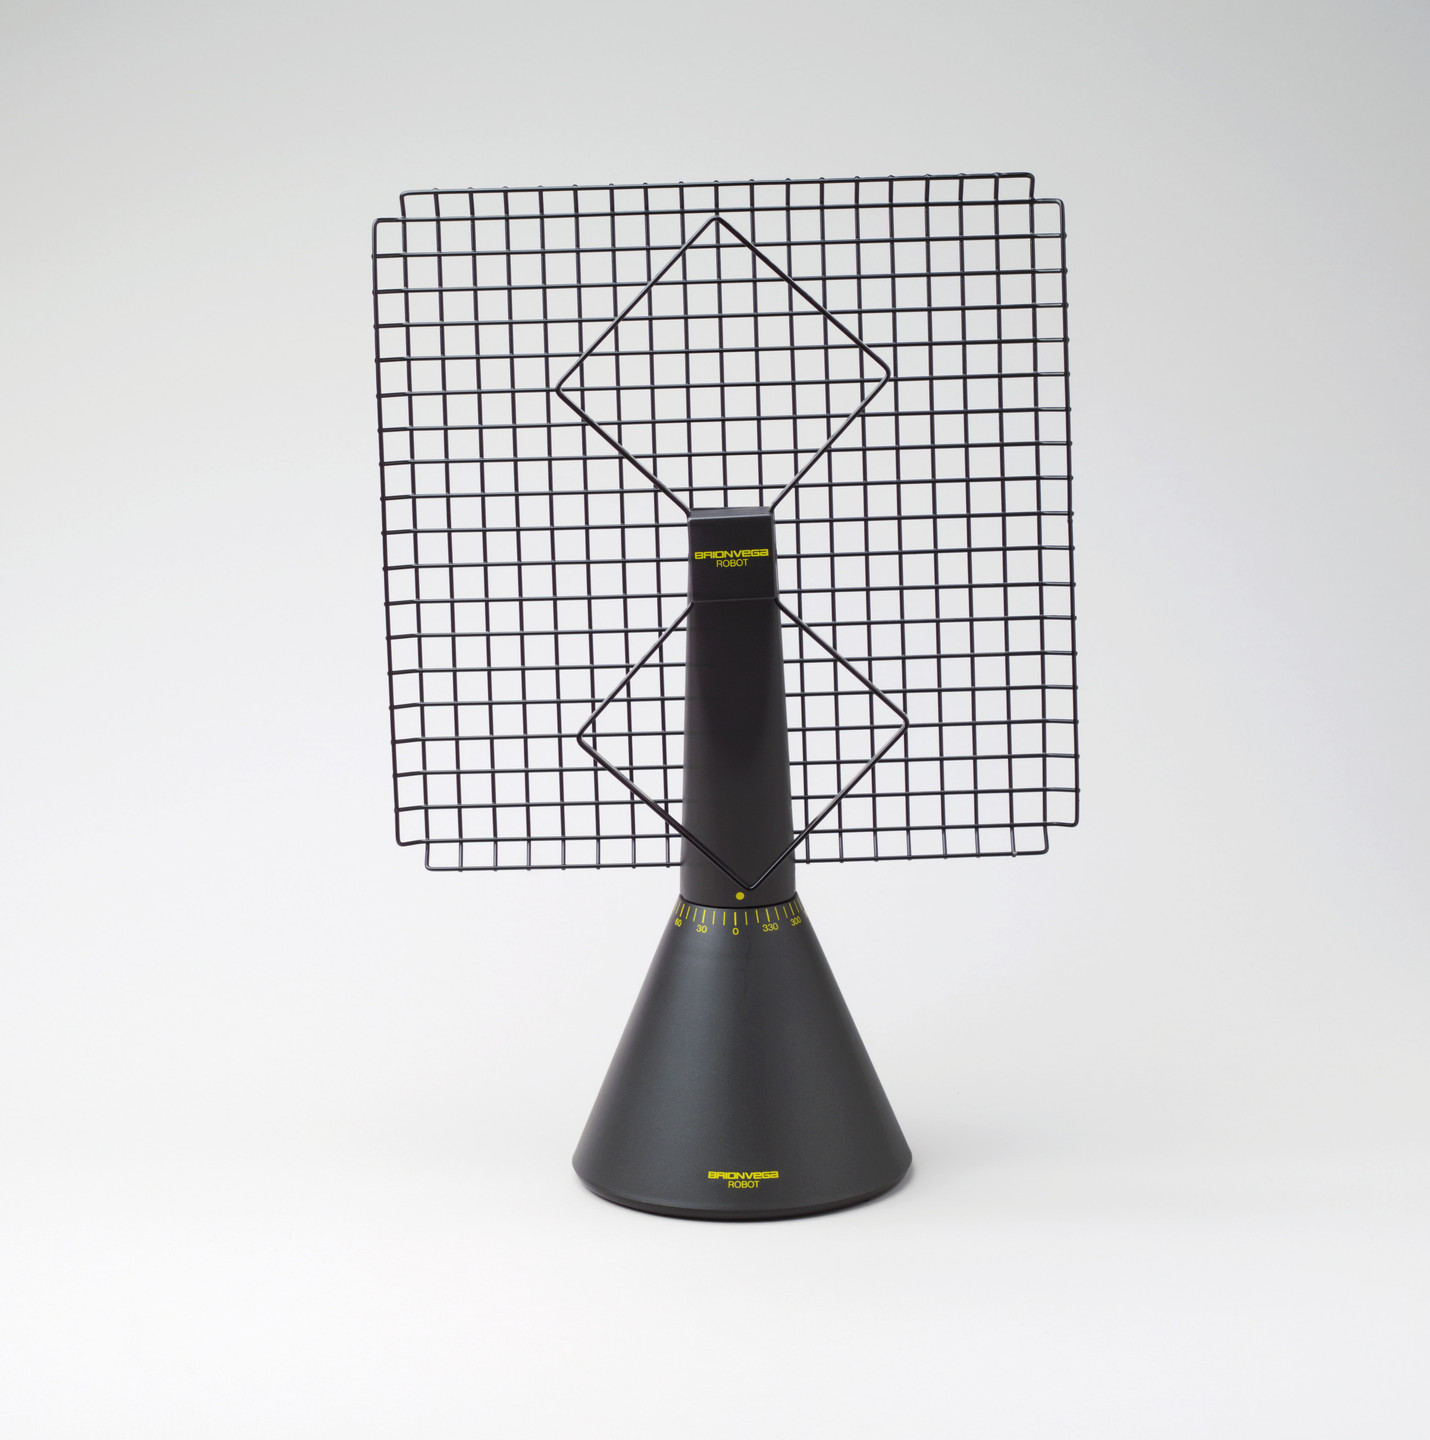 Mario Bellini. Robot Amplified Rotating Antenna. 1981